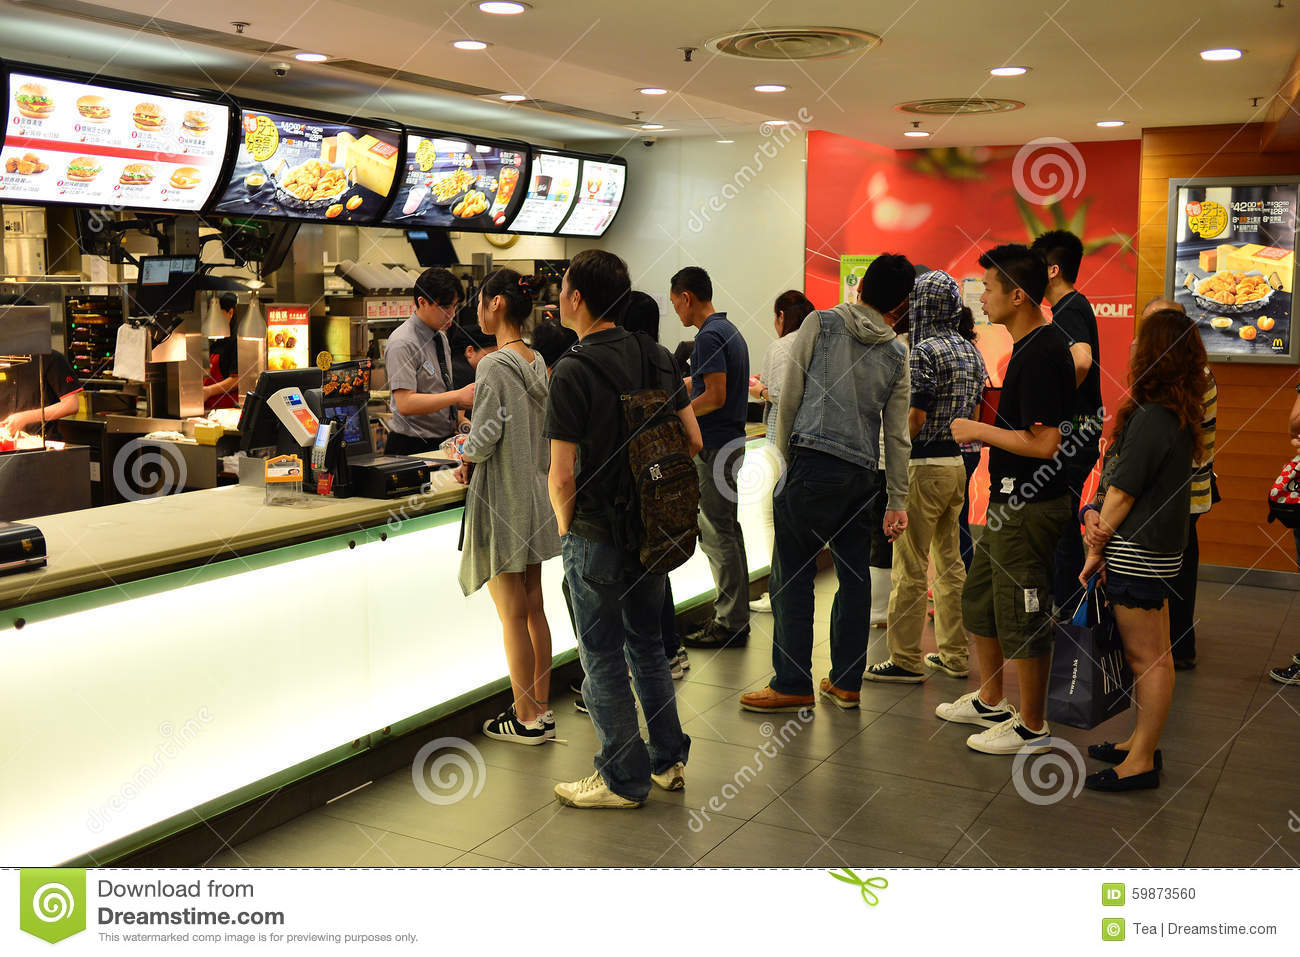 mcdonalds restaurants influence on hong kong culture They think that mcdonald's is a great symbol of globalization, because it affected the lifestyle of hong kong people, changing their eating habits by providing fast food, and introducing american fast food culture to the hong kong people.